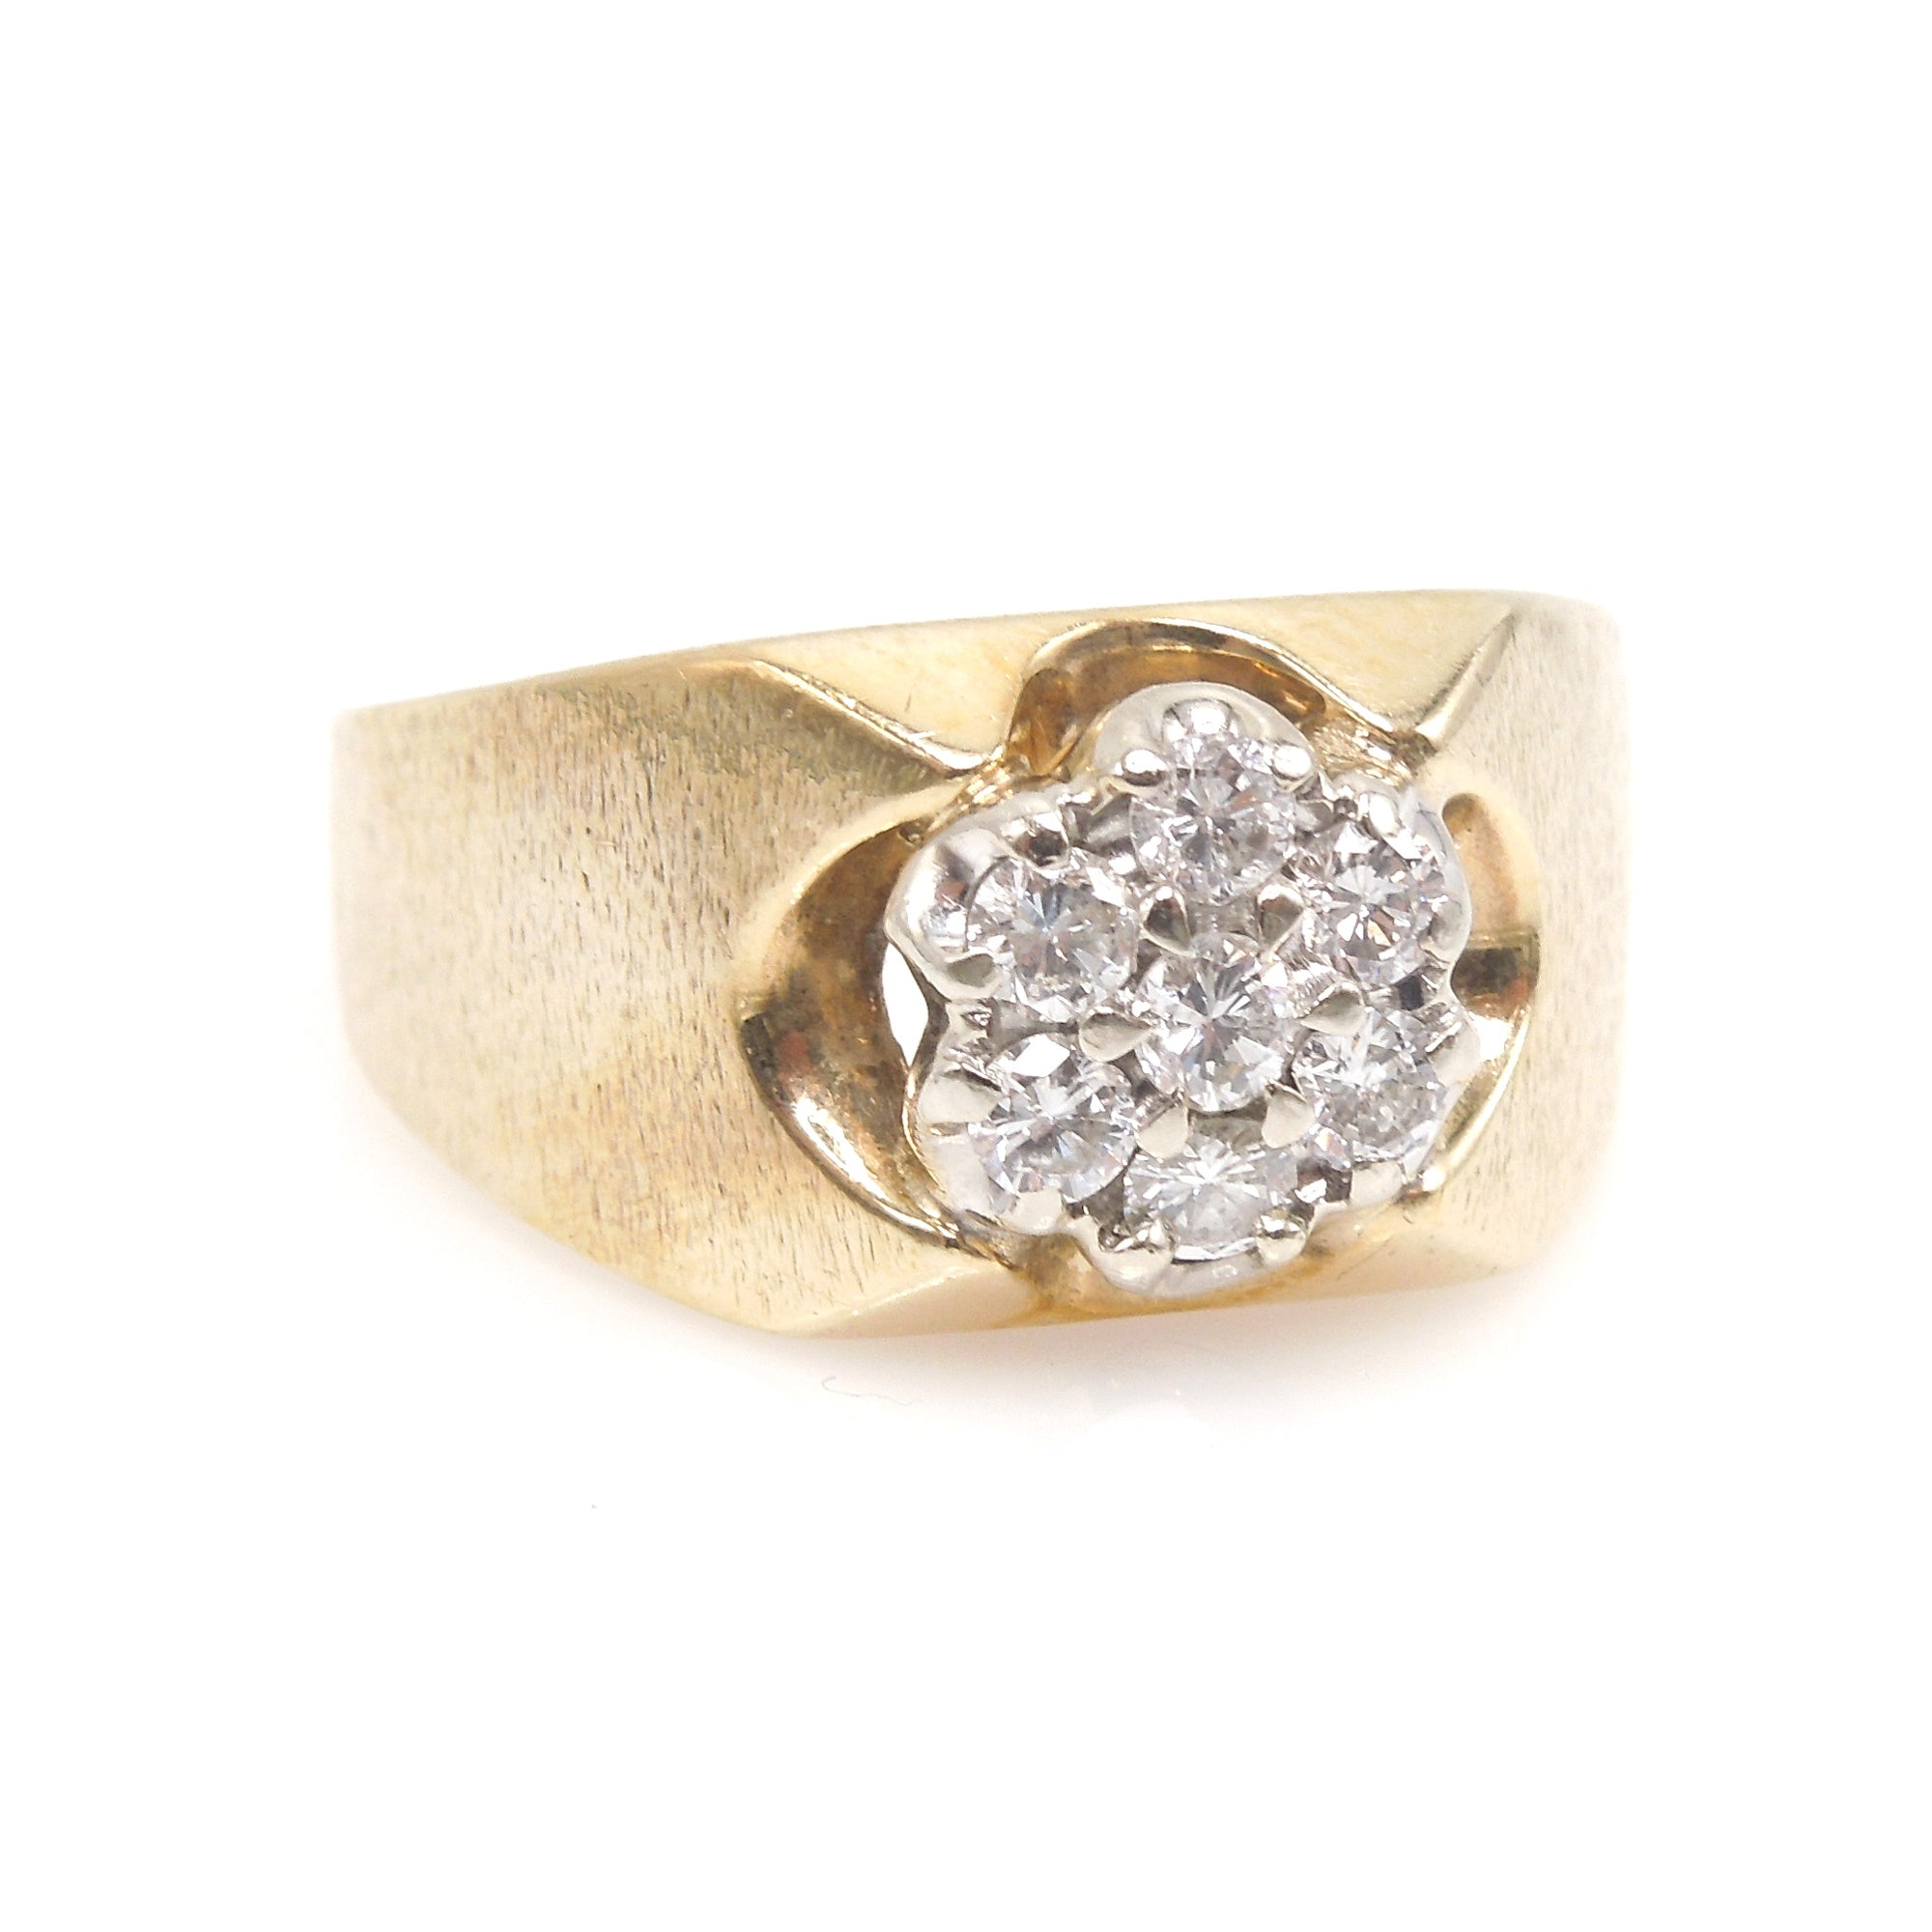 Heavy 14K Yellow Gold and Diamond Man's Ring